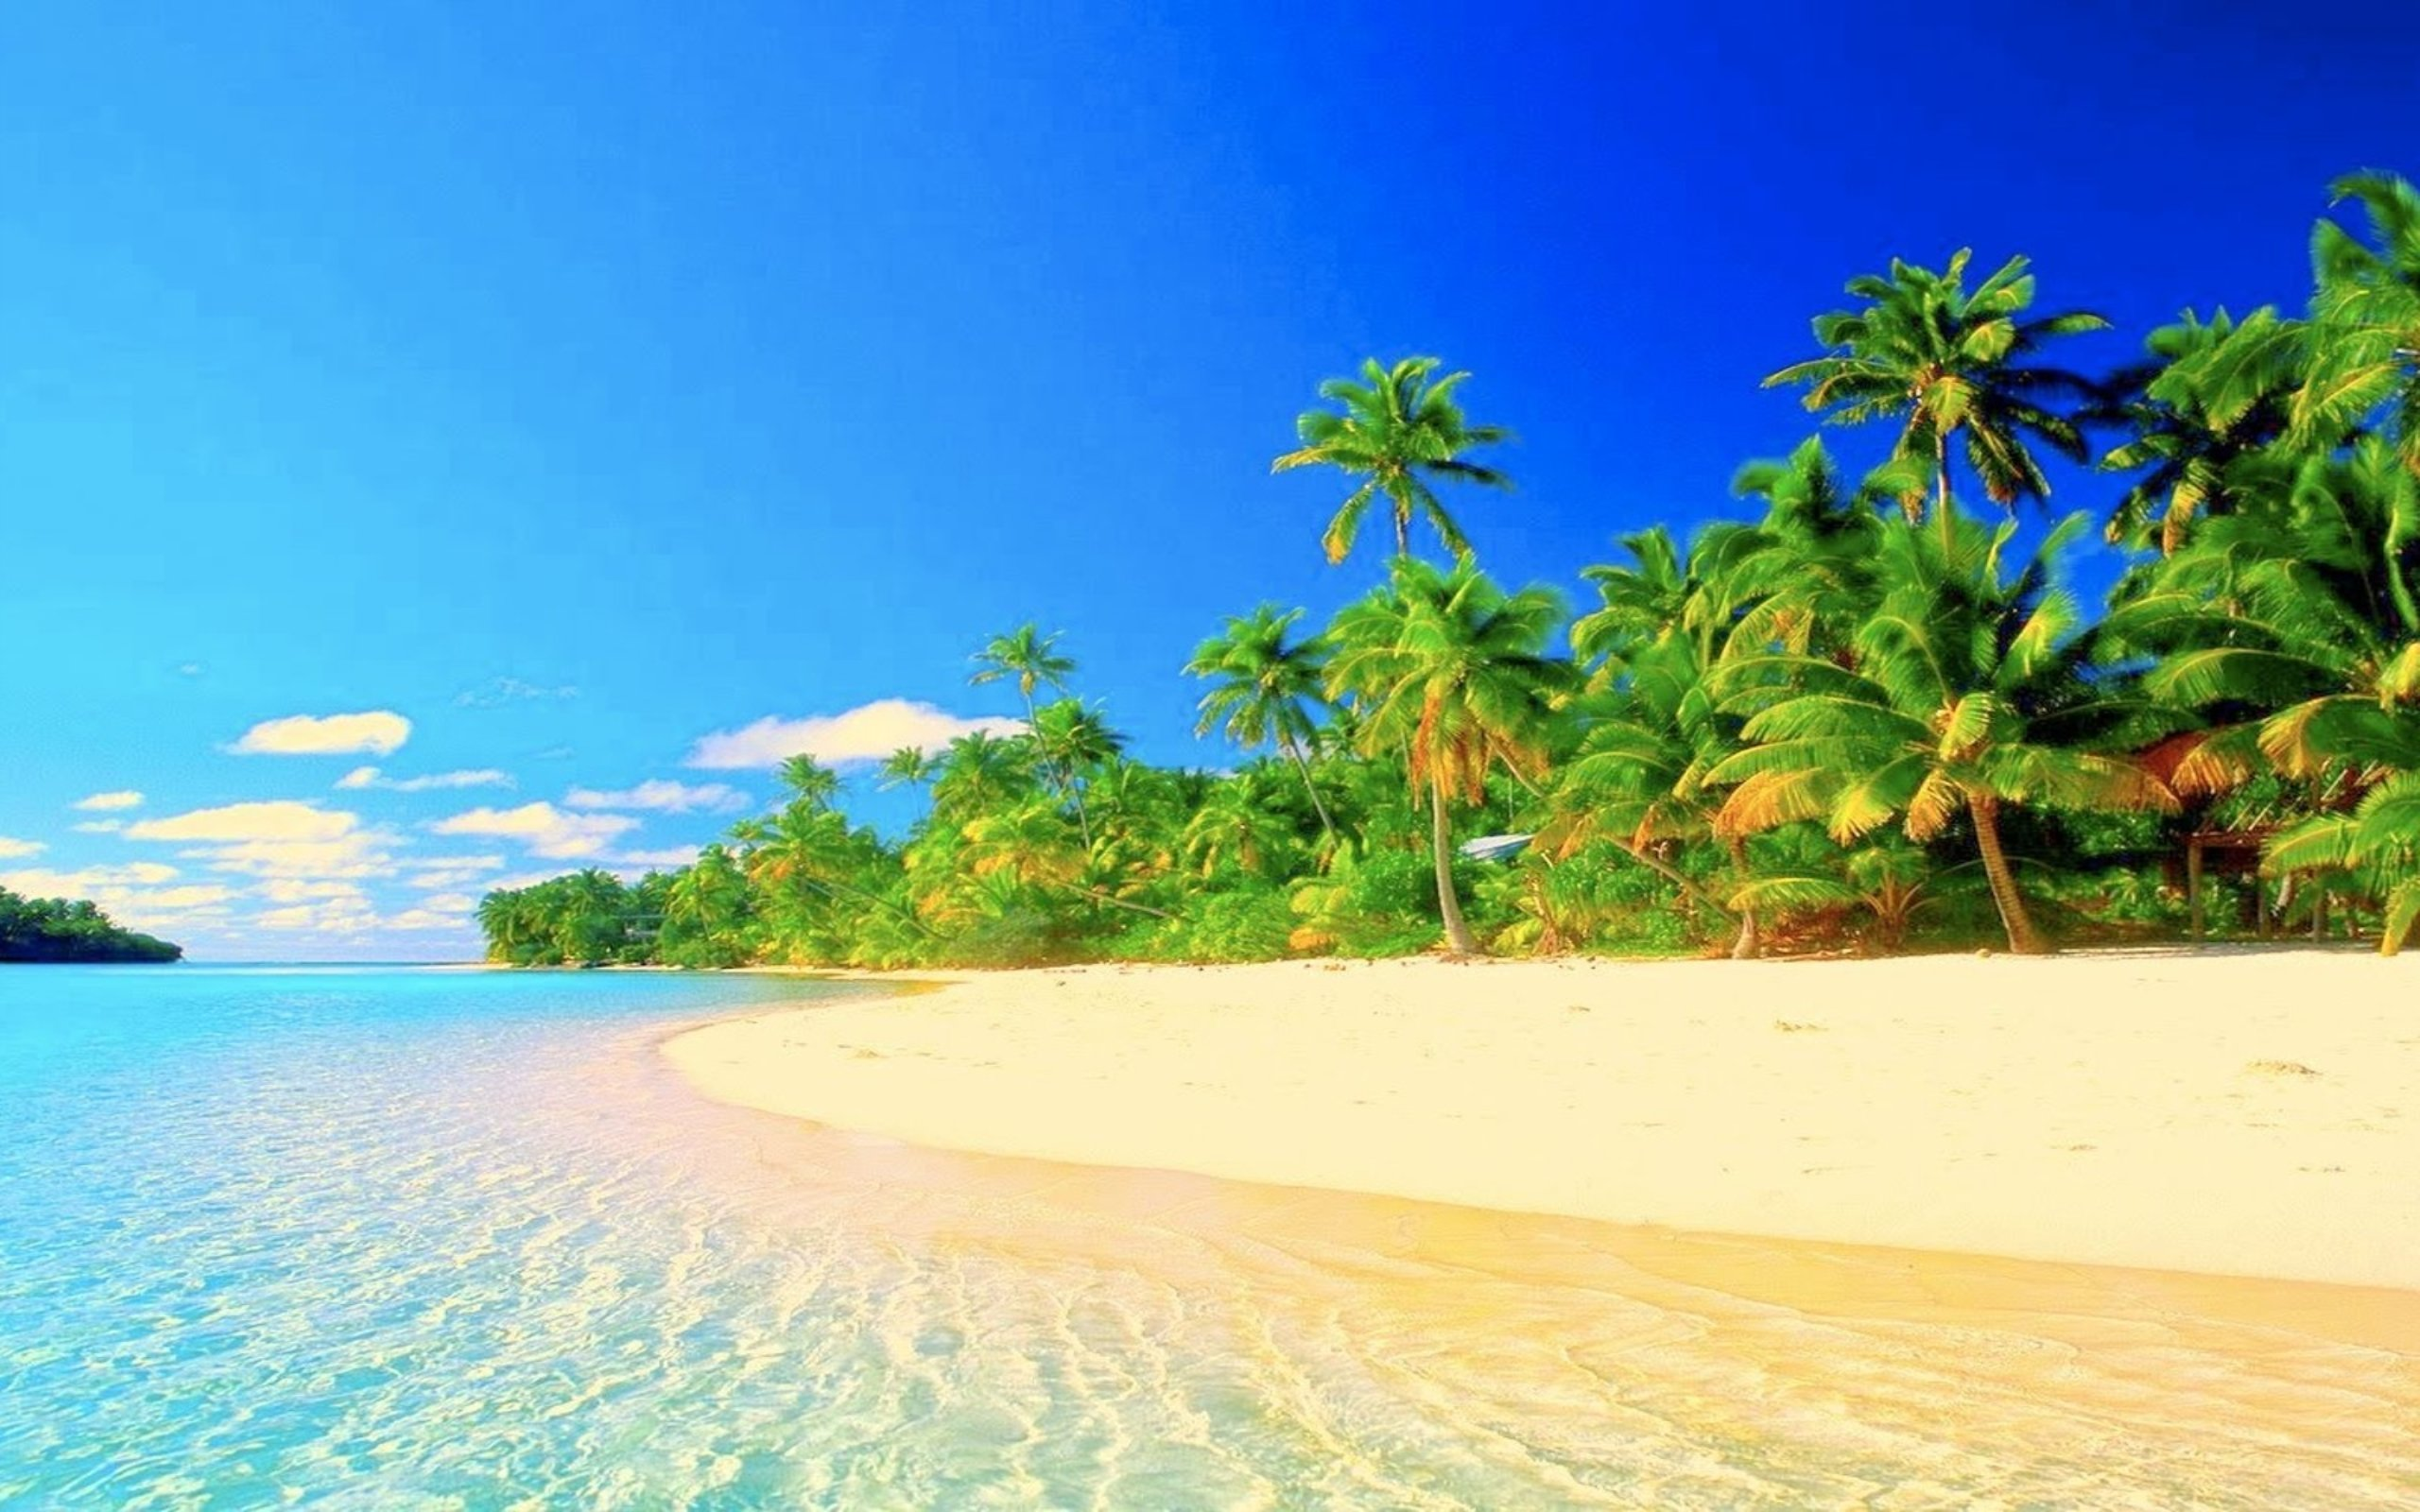 Hd Tropical Island Beach Paradise Wallpapers And Backgrounds: Tropical Paradise Wallpaper High Resolution